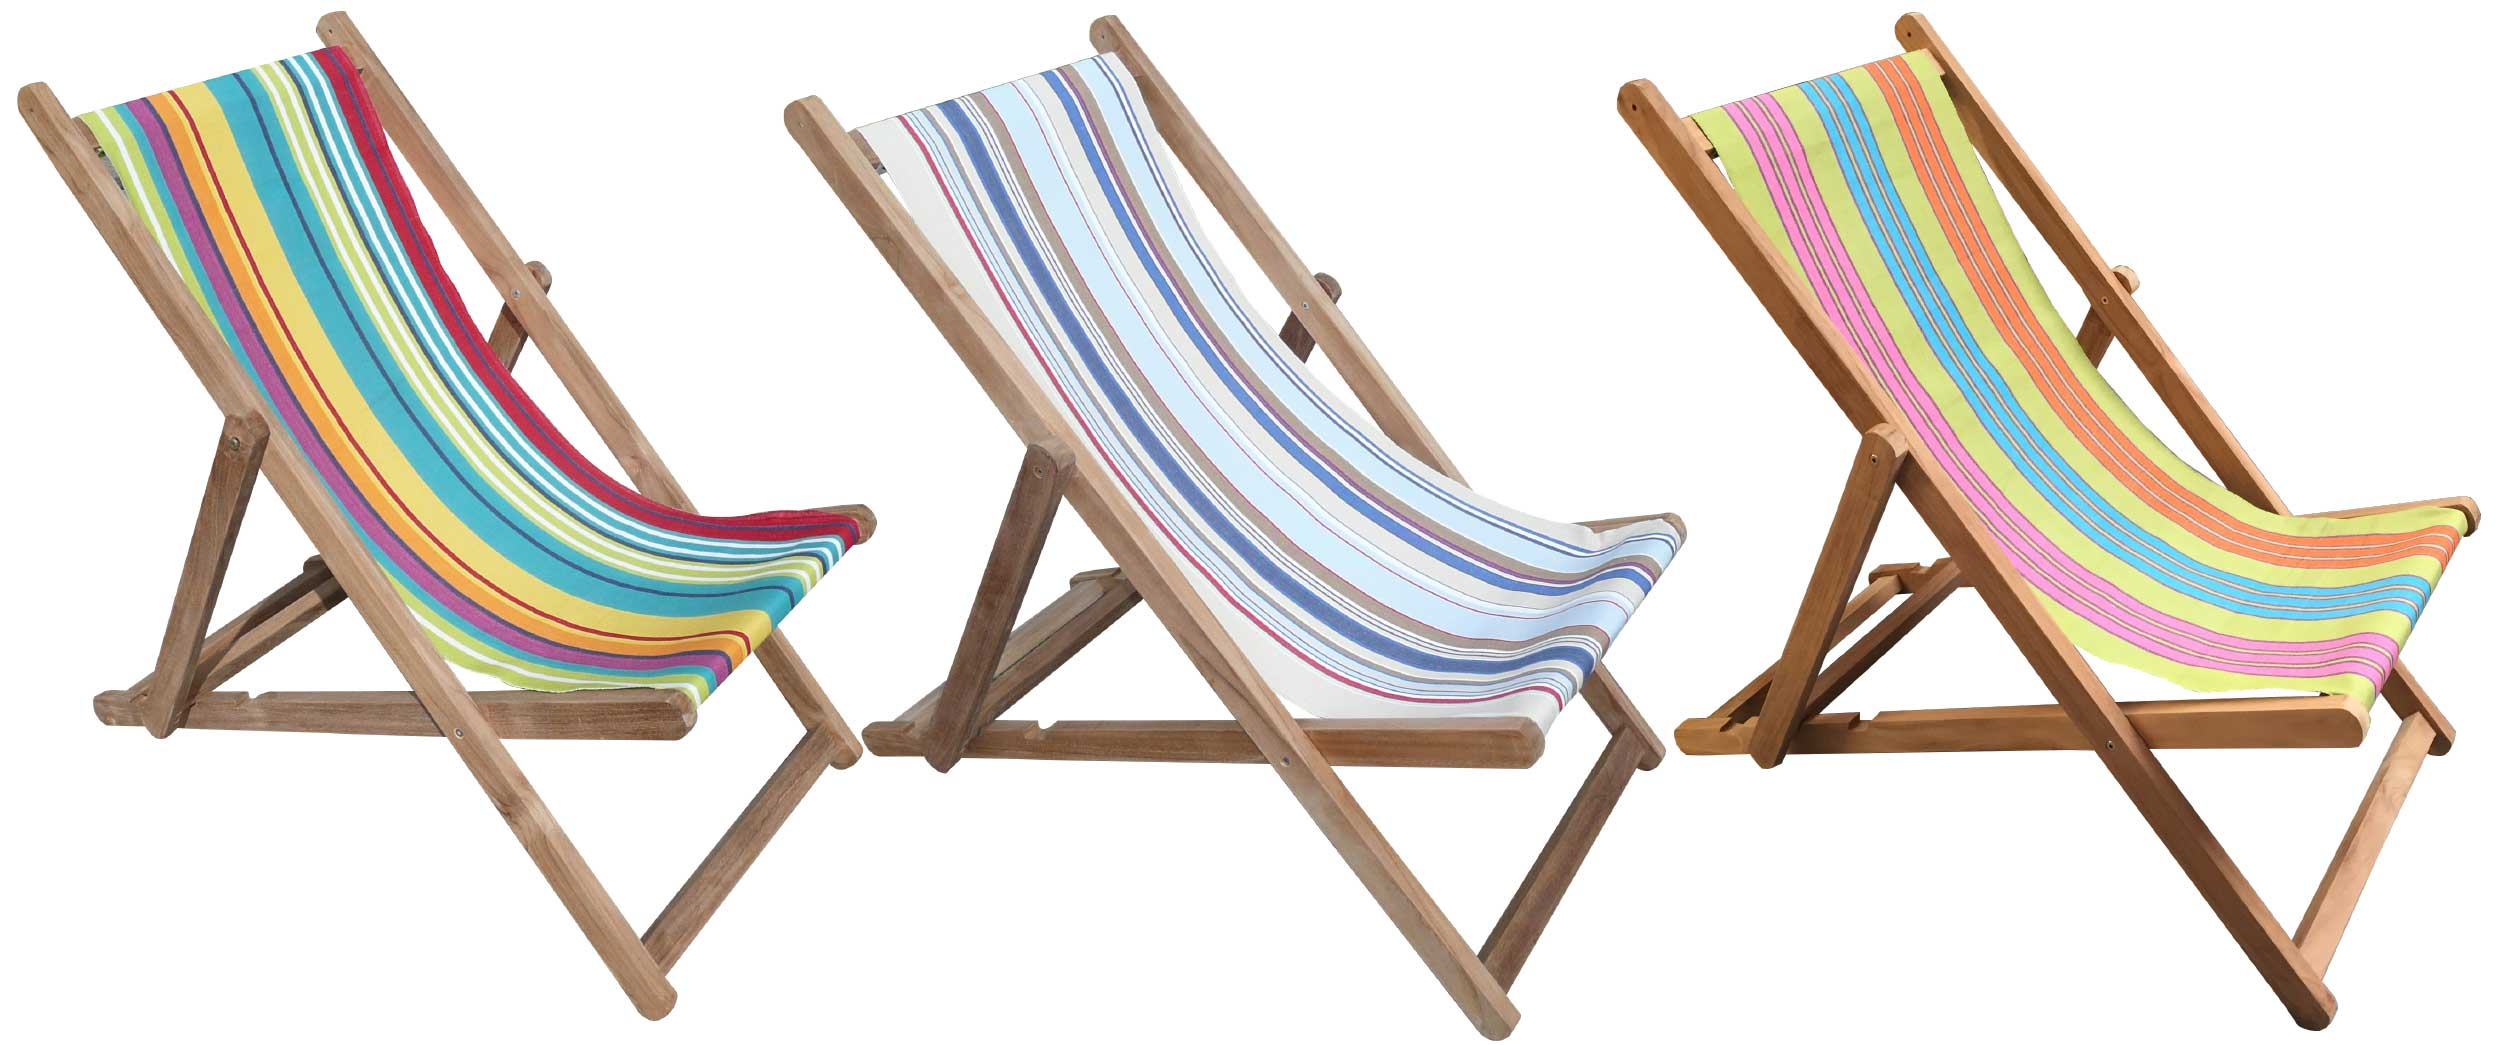 Brown Deckchairs | Wooden Deck Chairs with Striped Deckchair Sling - Yoga Stripe